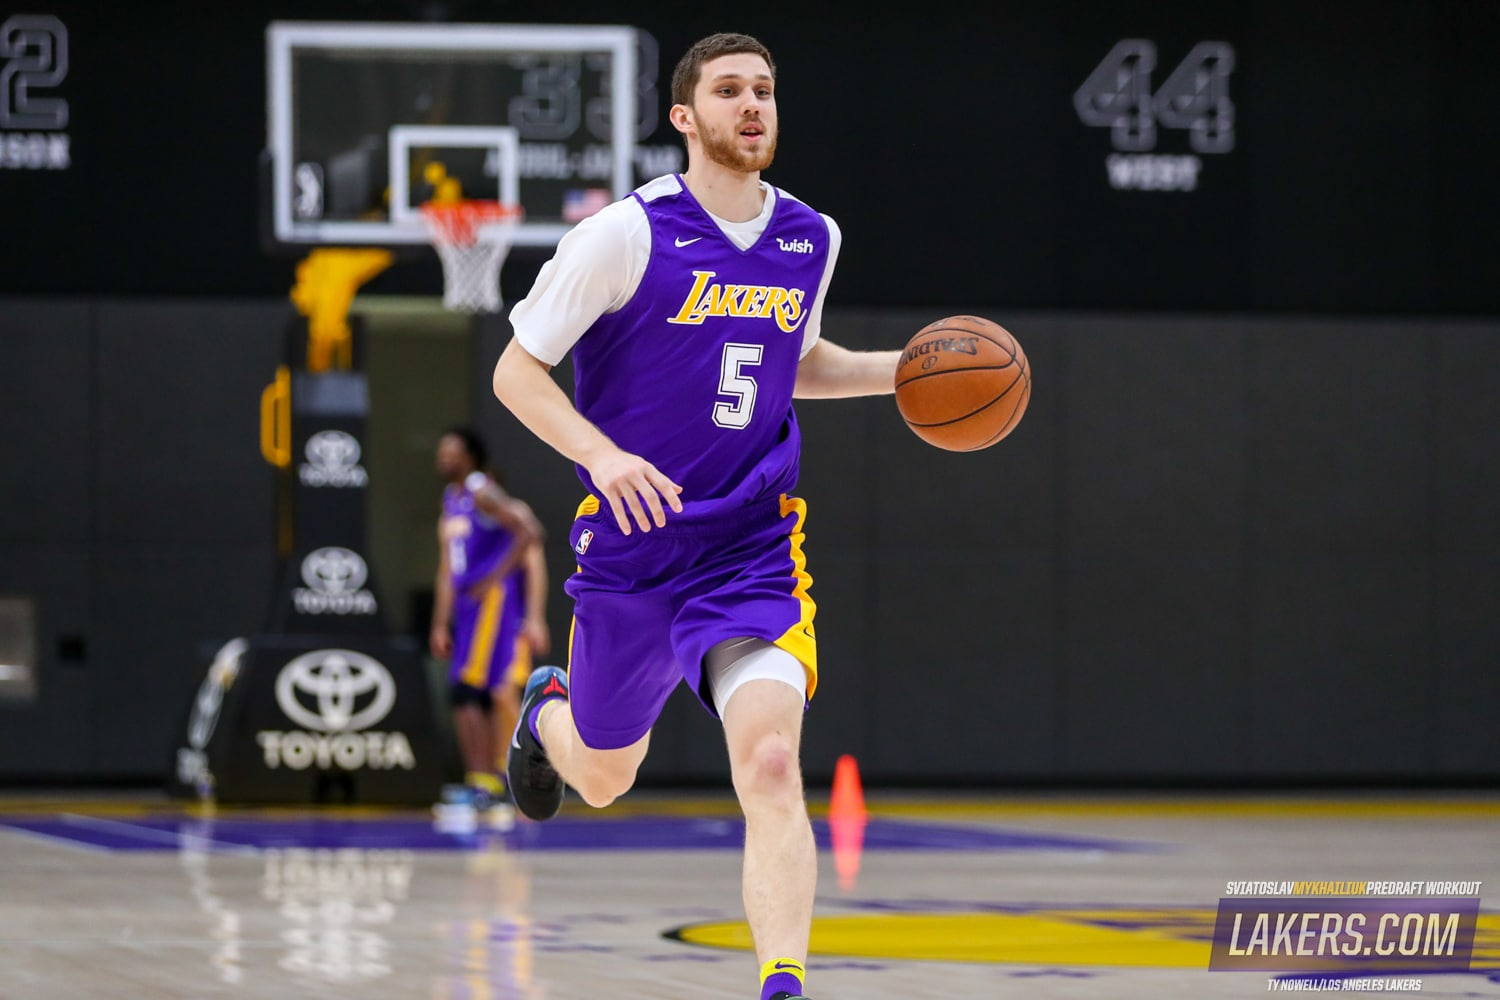 e62b898c4f1 Kansas guard Sviatoslav Mykhailiuk works out for the Los Angeles Lakers at  the UCLA Health Training